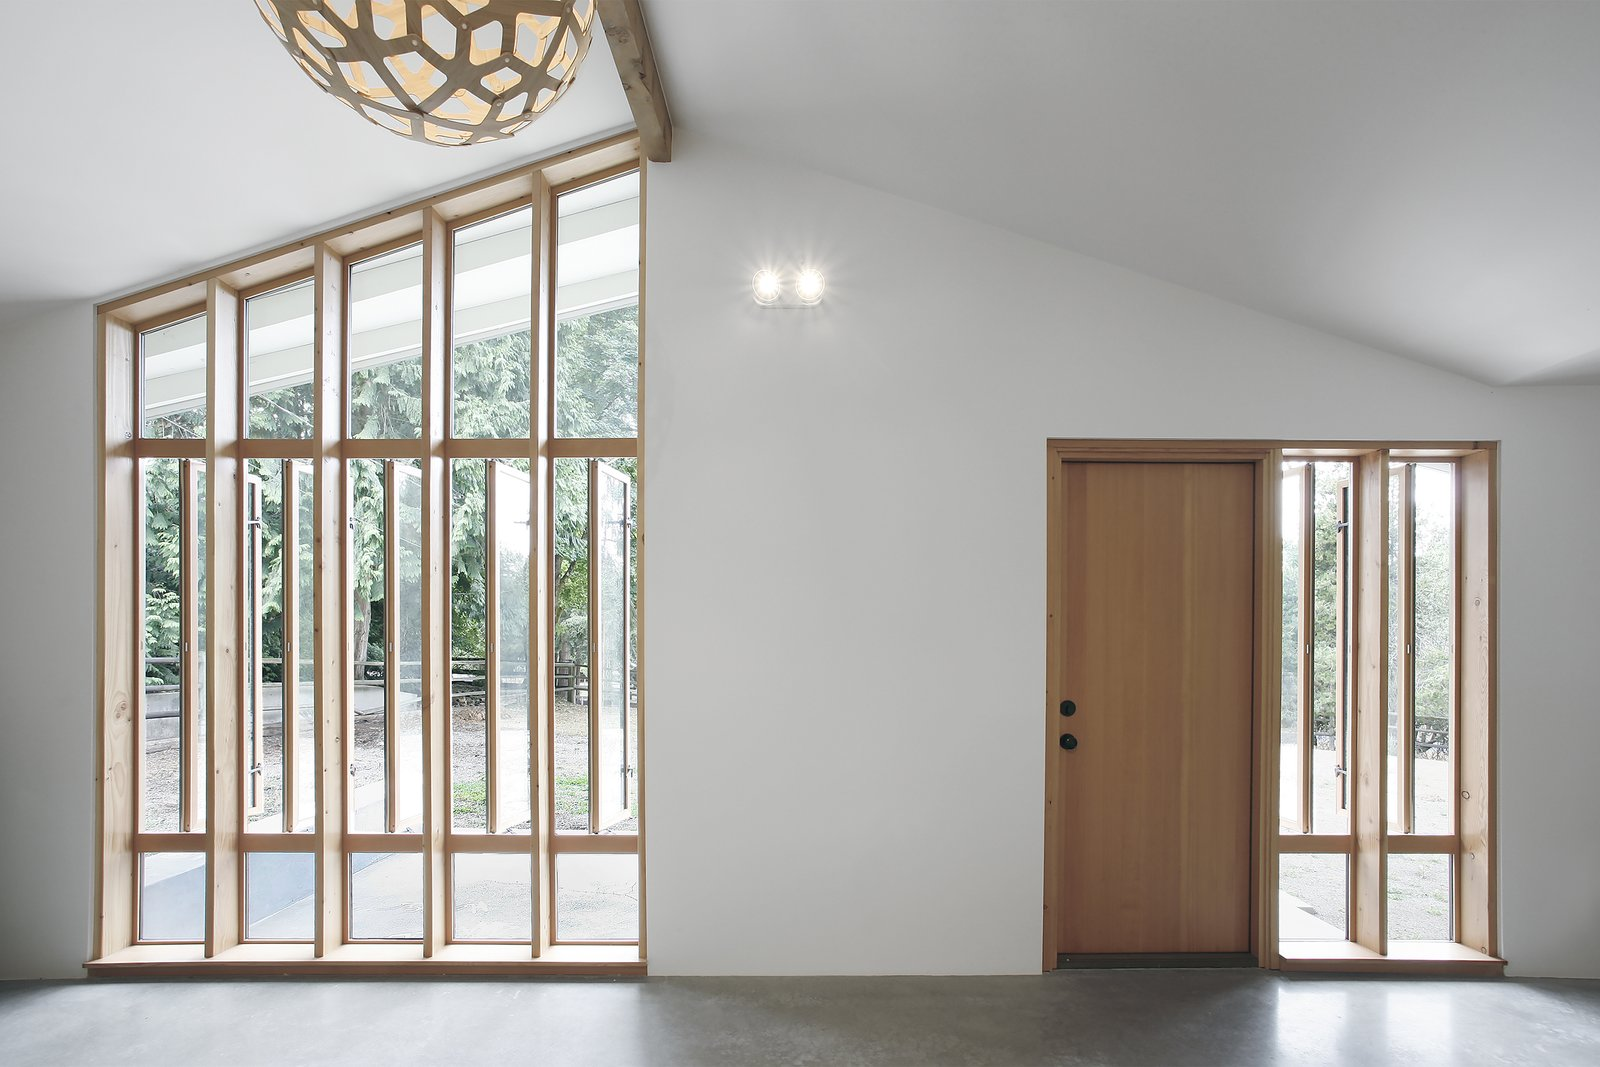 """""""The bank of full-height windows brings in tons of southern light, but it also gives the stable a strong street presence, and it ties into the stick-built window pattern already established at the entry to the main house,"""" Schaer says. The locally-sourced Douglas fir windows and doors were provided by Lindal Cedar Homes. Tagged: Doors, Swing Door Type, Wood, and Exterior.  Horse Stable Studio by Kelly Dawson"""